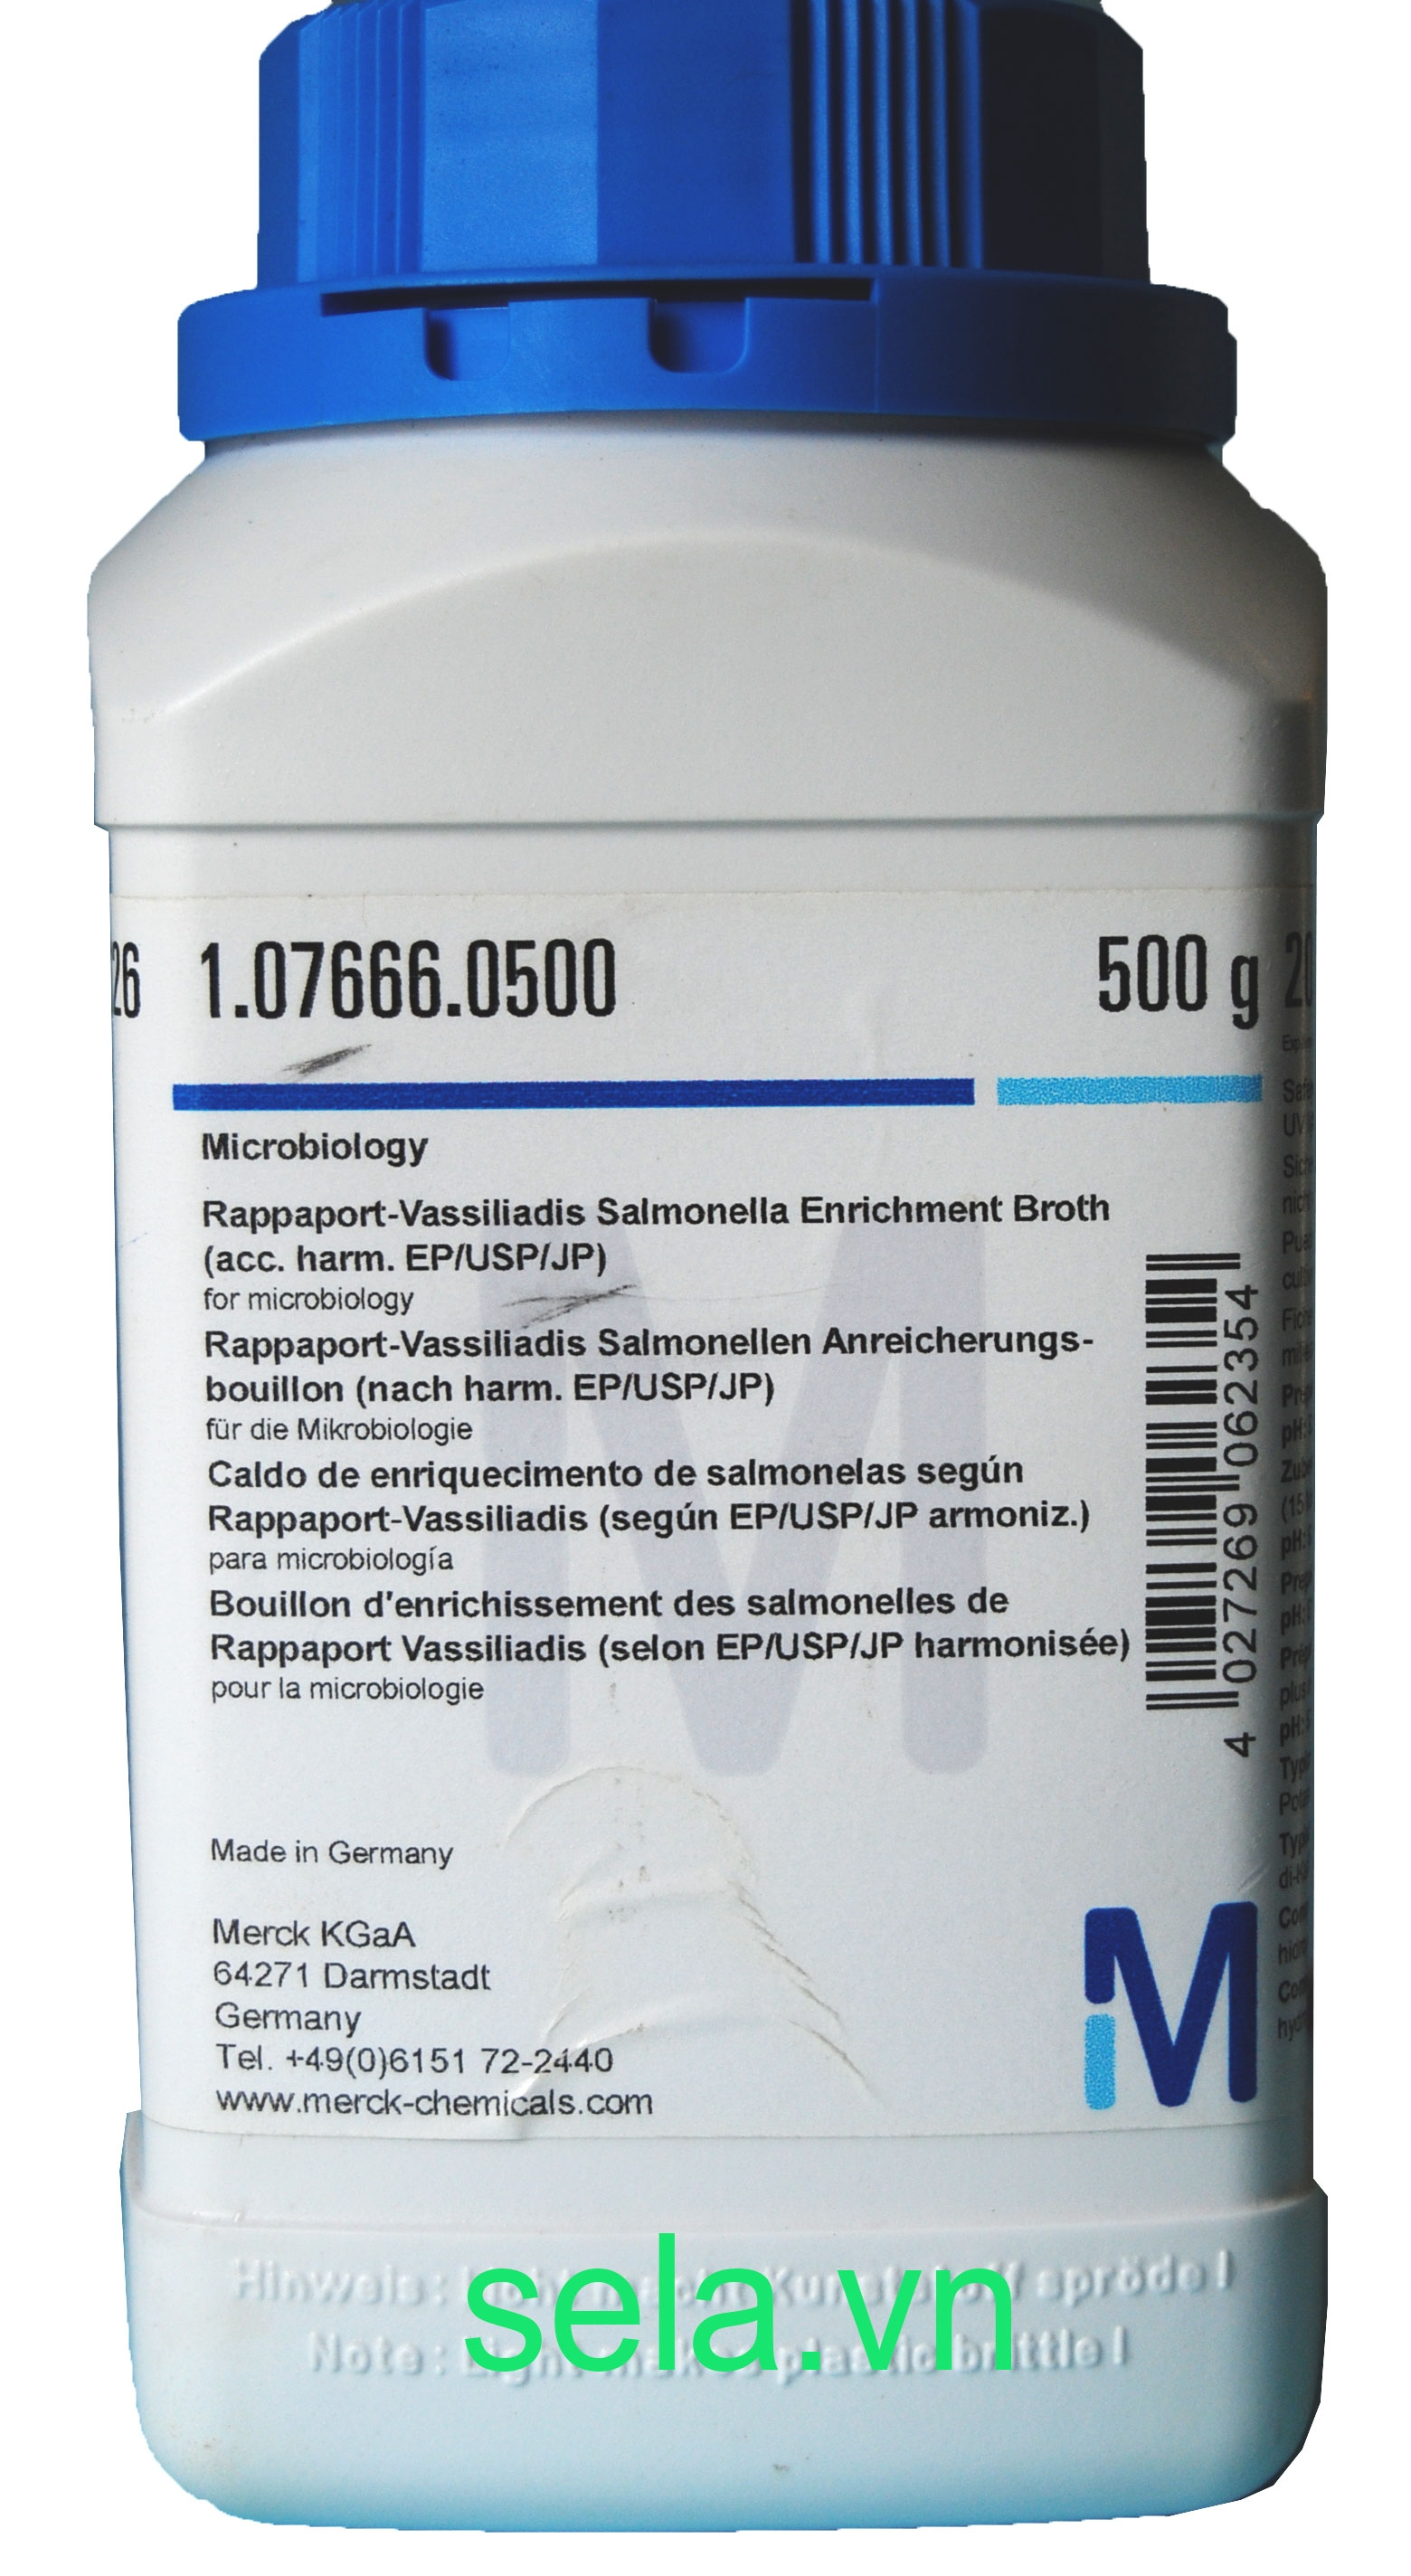 Rappaport-Vassiliadis Salmonella Enrichment Broth (acc. harm. EP/USP/JP) for microbiology